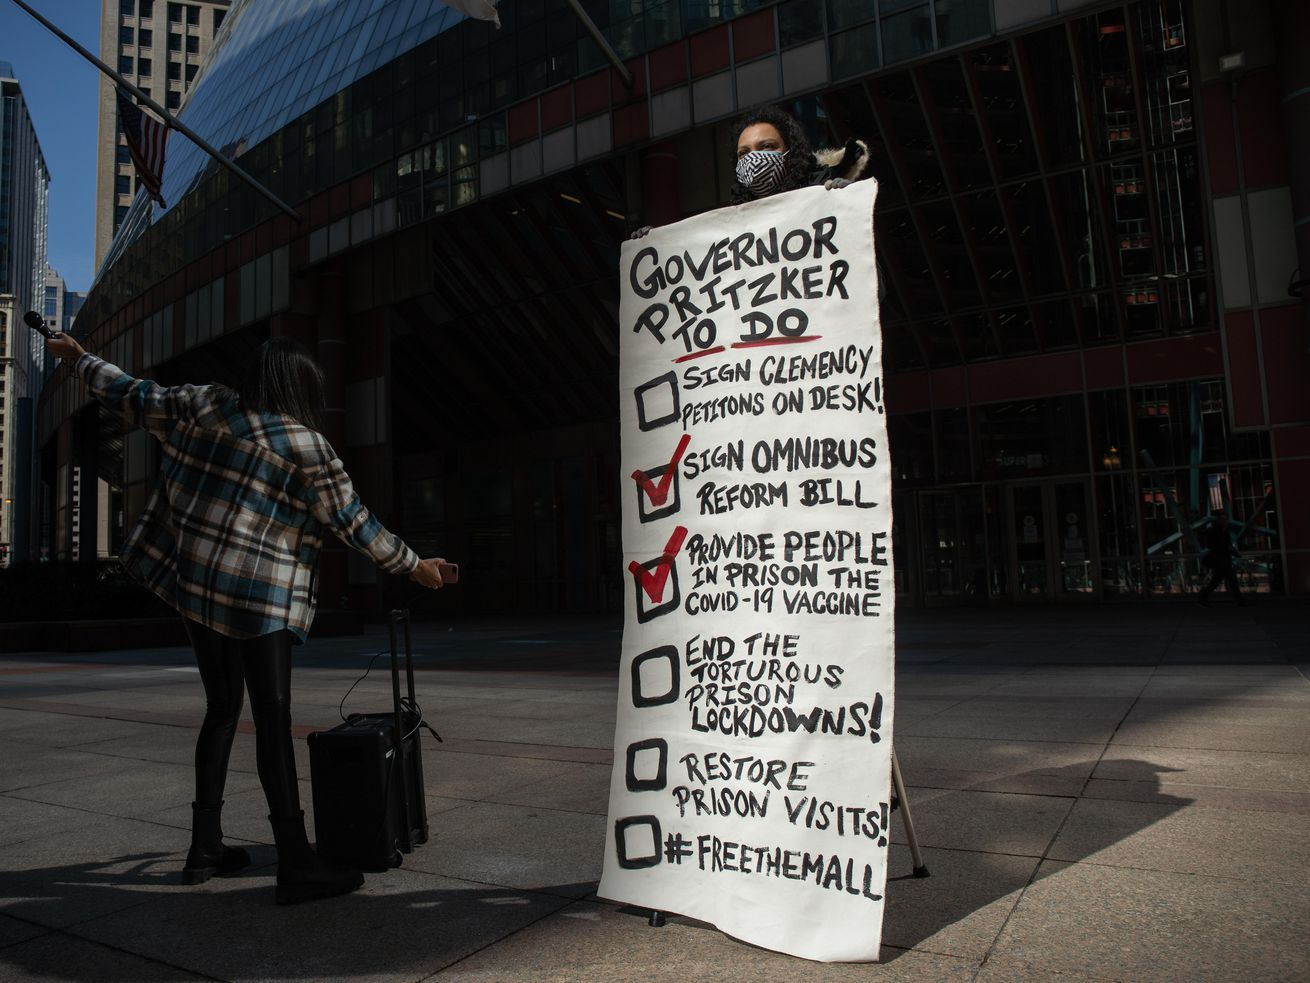 Zana Marino, an End Illinois Prison Lockdown Coalition member, holds a list of demands for Gov. J.B. Pritzker outside the James R. Thompson Center in the Loop, Friday morning, March 9, 2021.